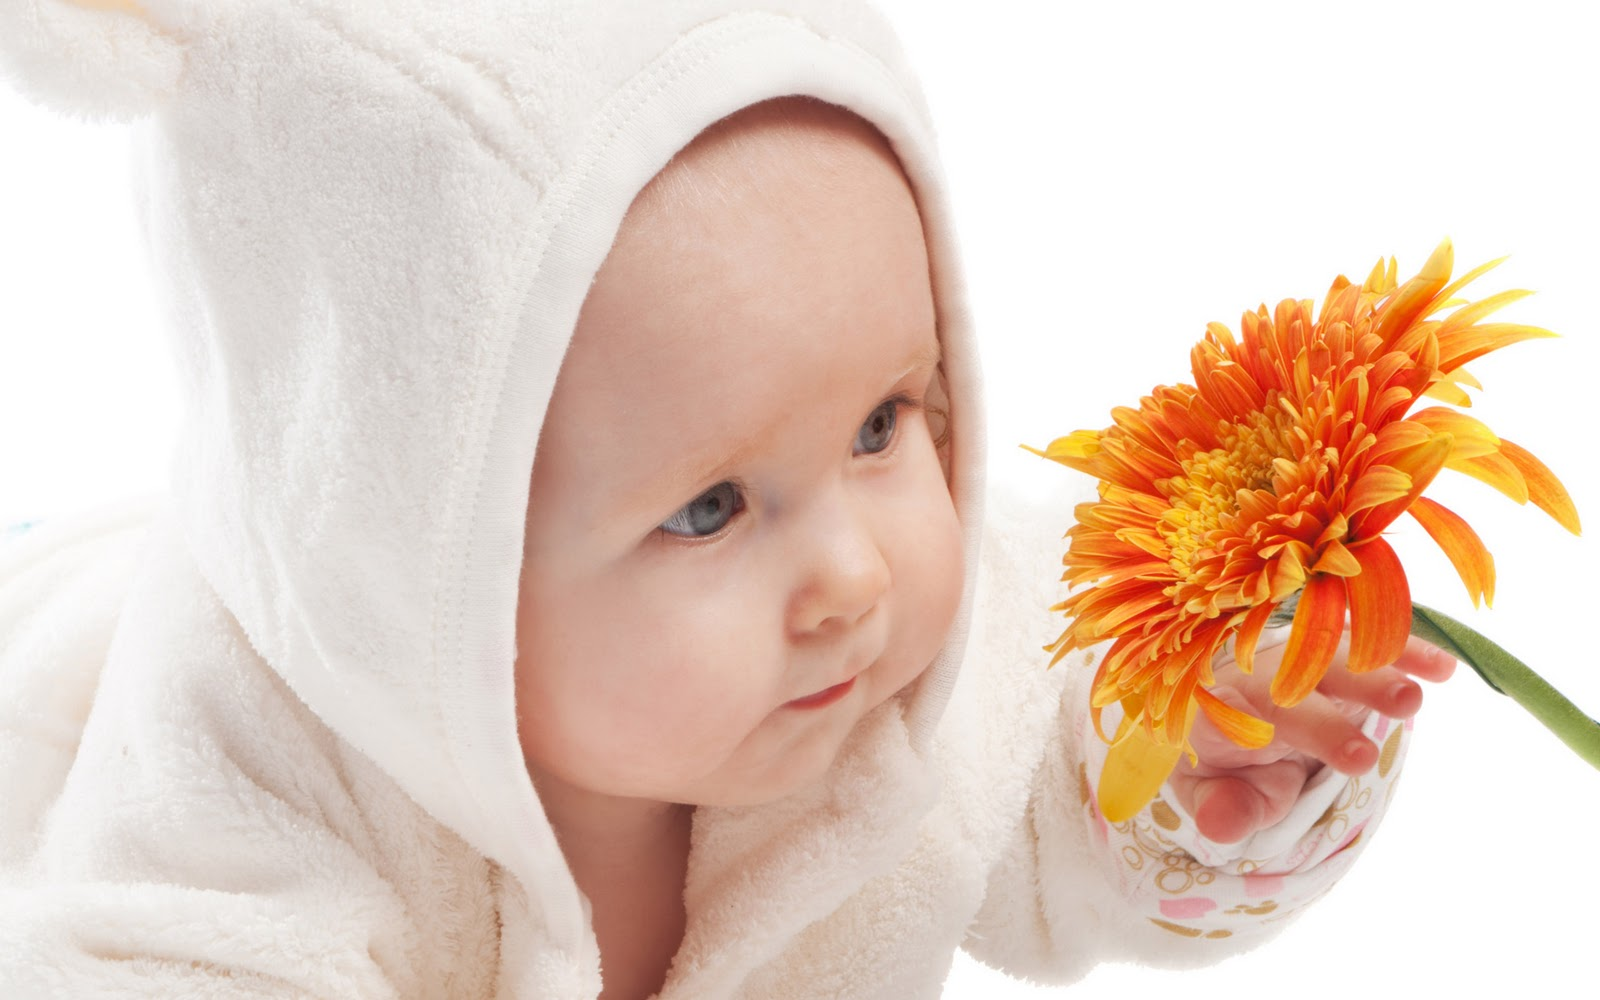 babbies wallpapers free download, cute kids wallpapers, smiling